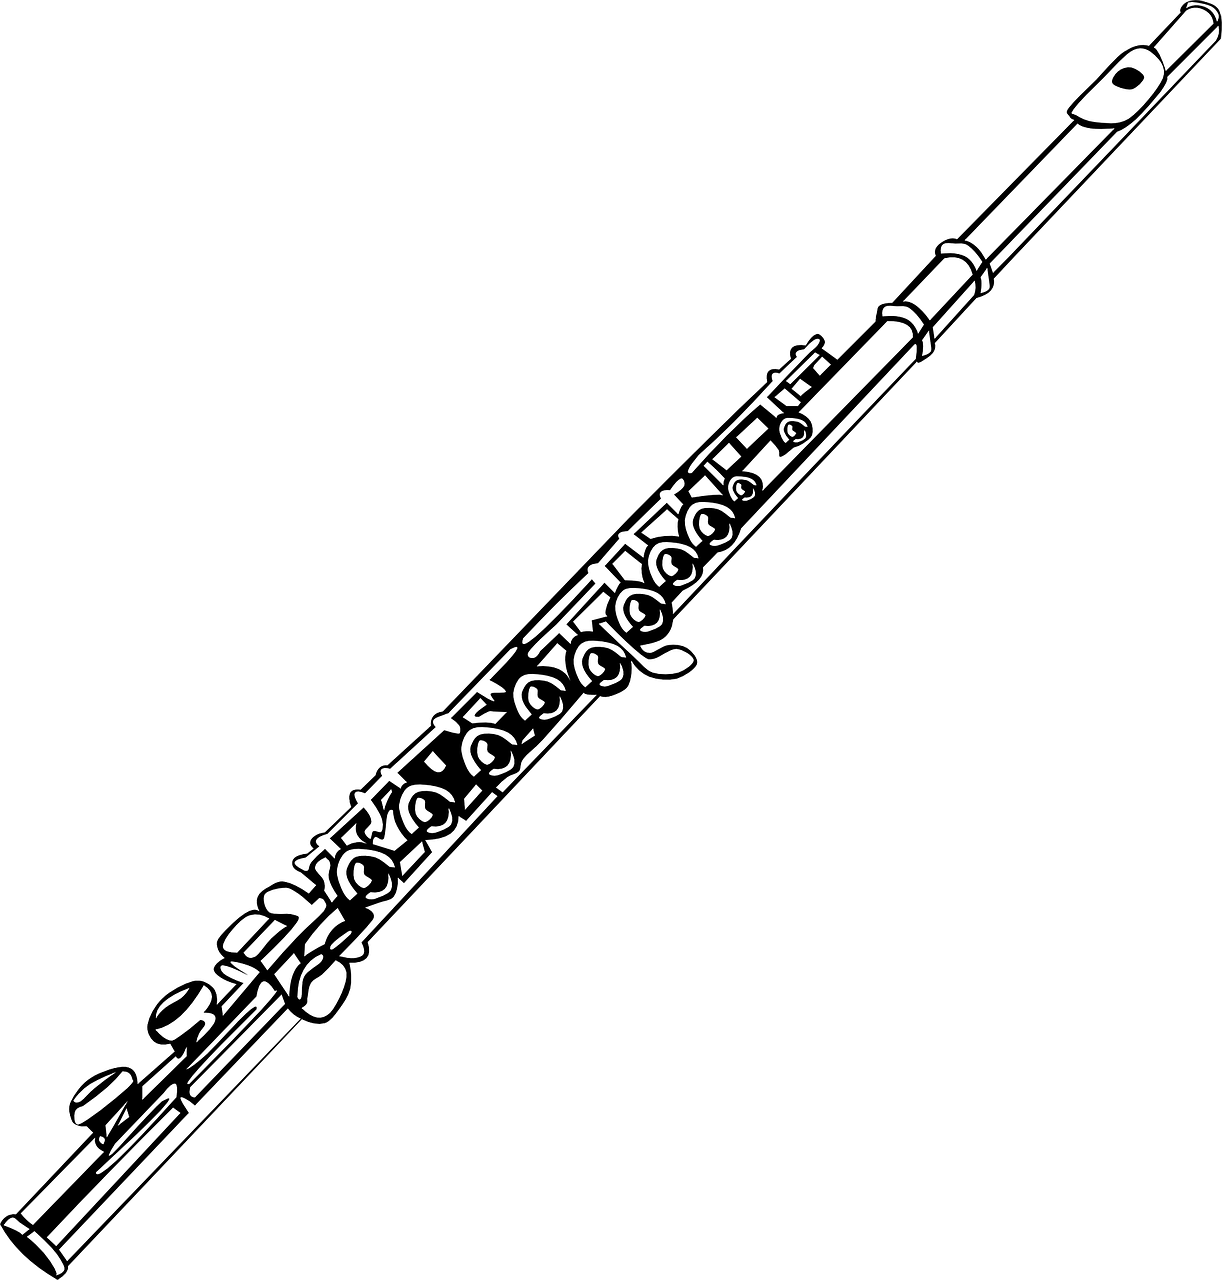 flute musical instrument free photo